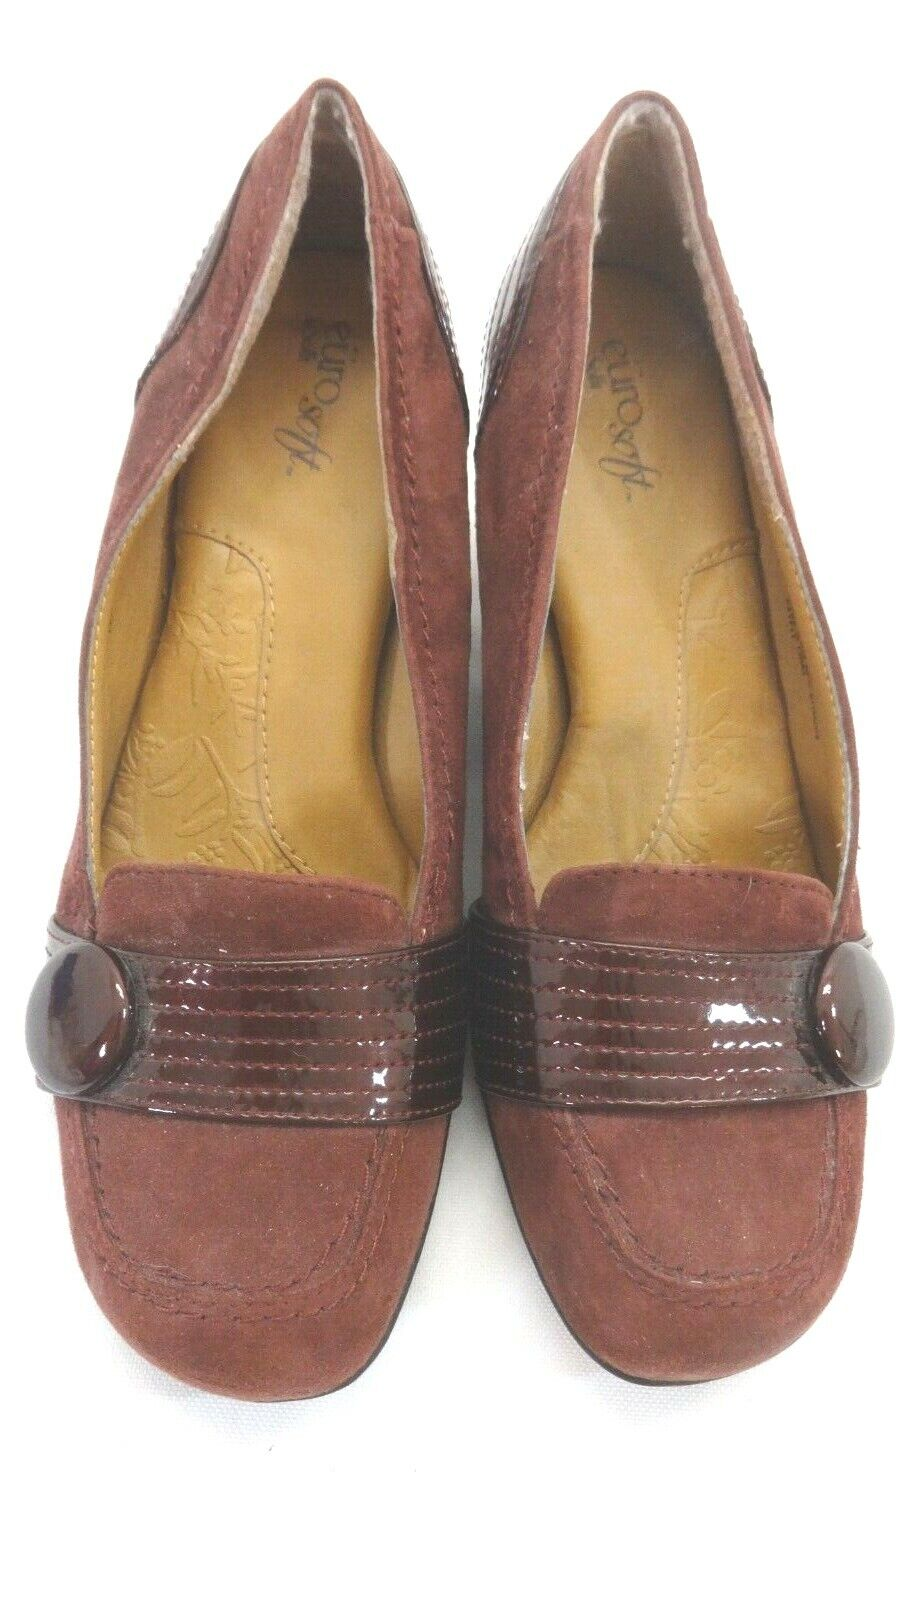 EURO SOFFT WOMENS BURGUNDY LEATHER LOAFERS CUSHION INSOLES SIZE 7.5